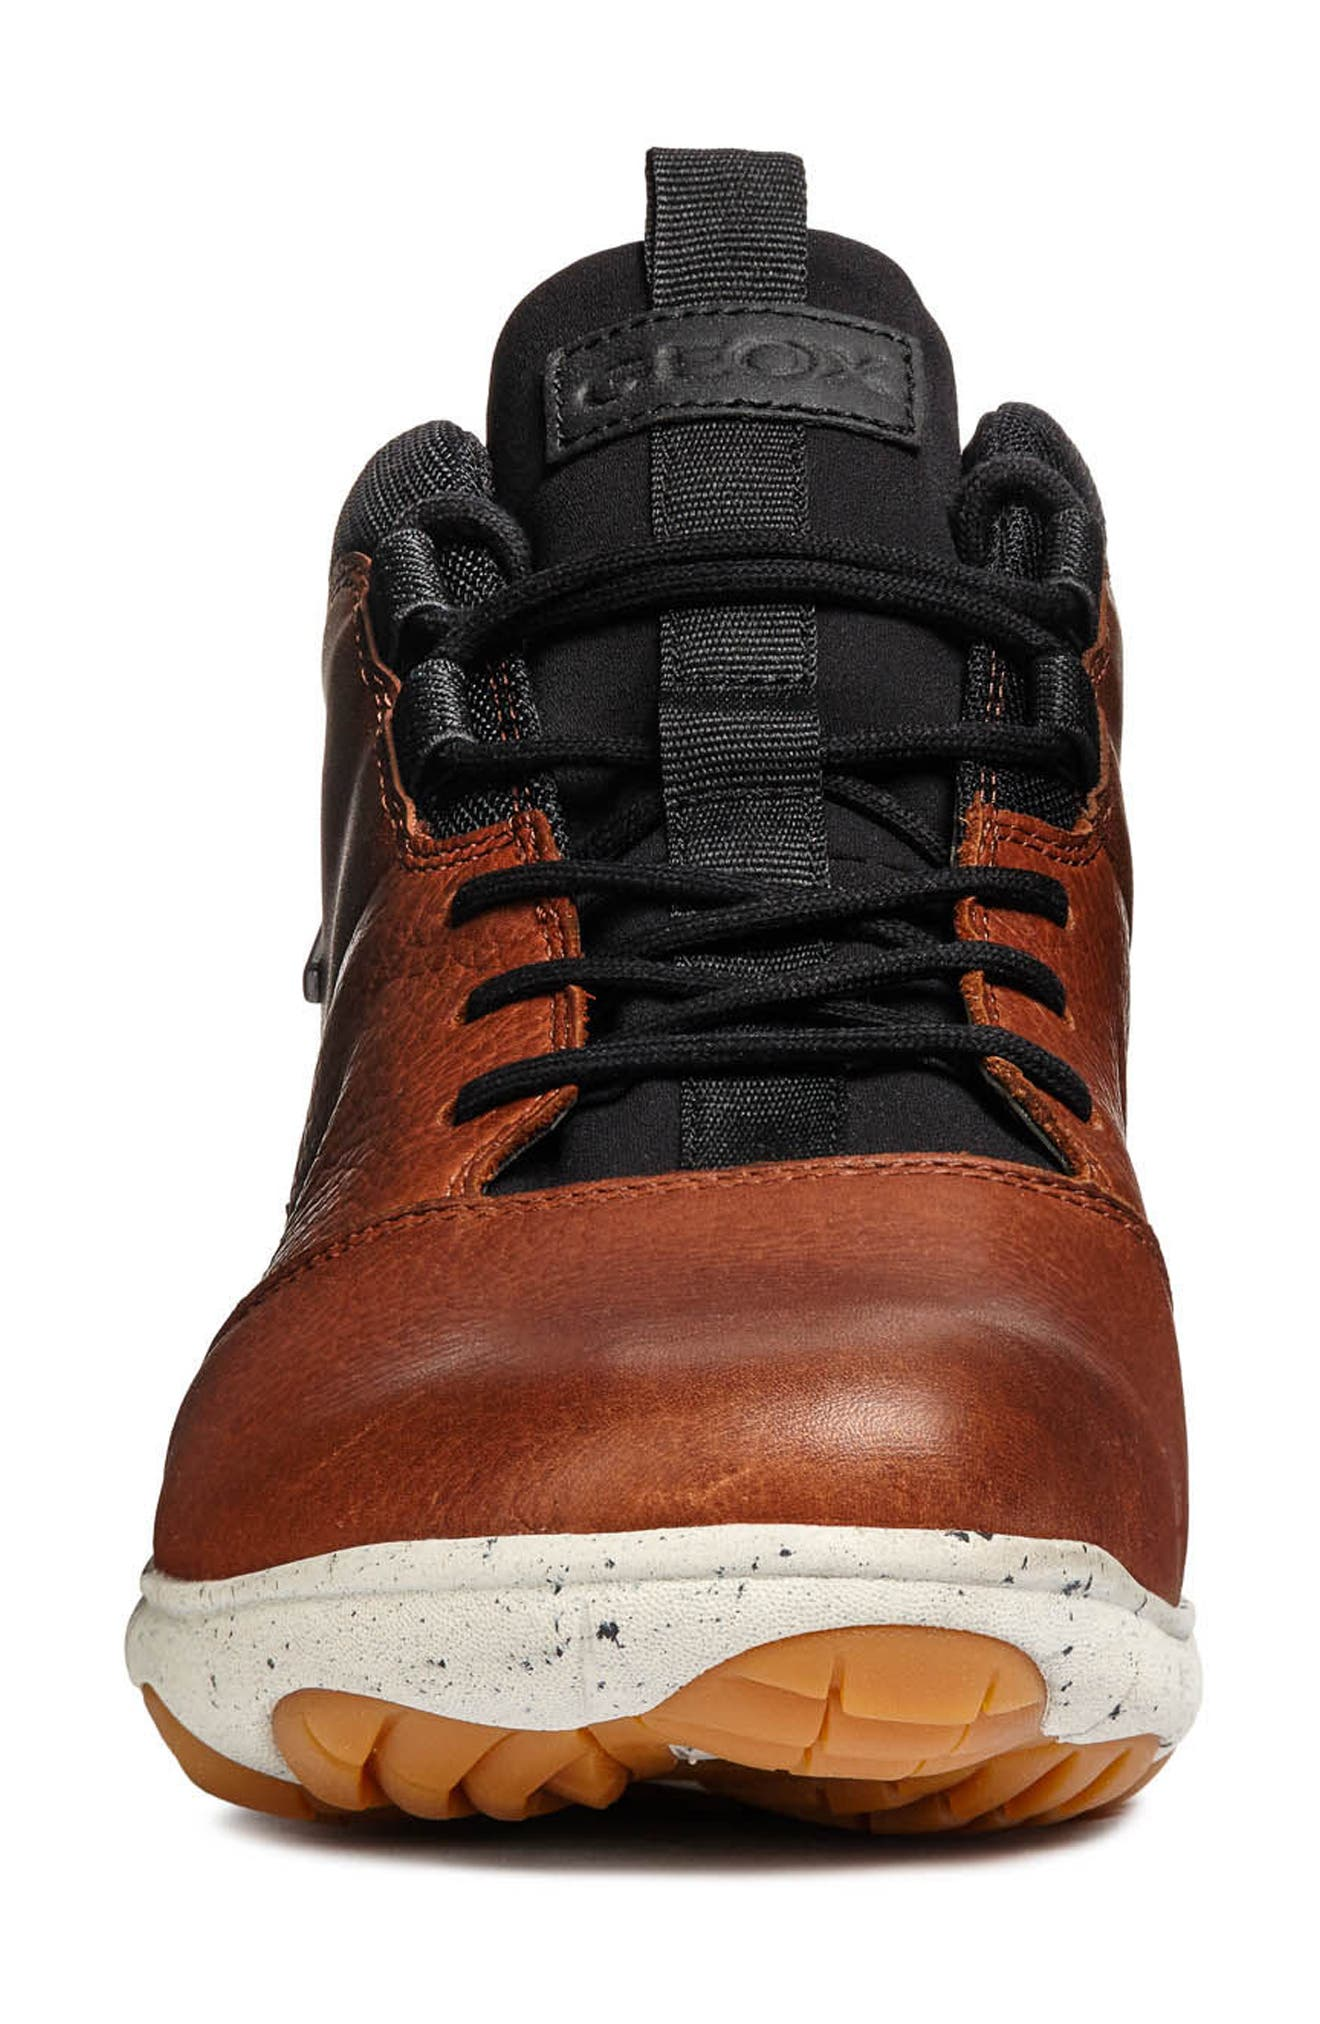 Nebula 4x4 ABX 5 Waterproof Sneaker Boot,                             Alternate thumbnail 4, color,                             BROWN/ COGNAC LEATHER